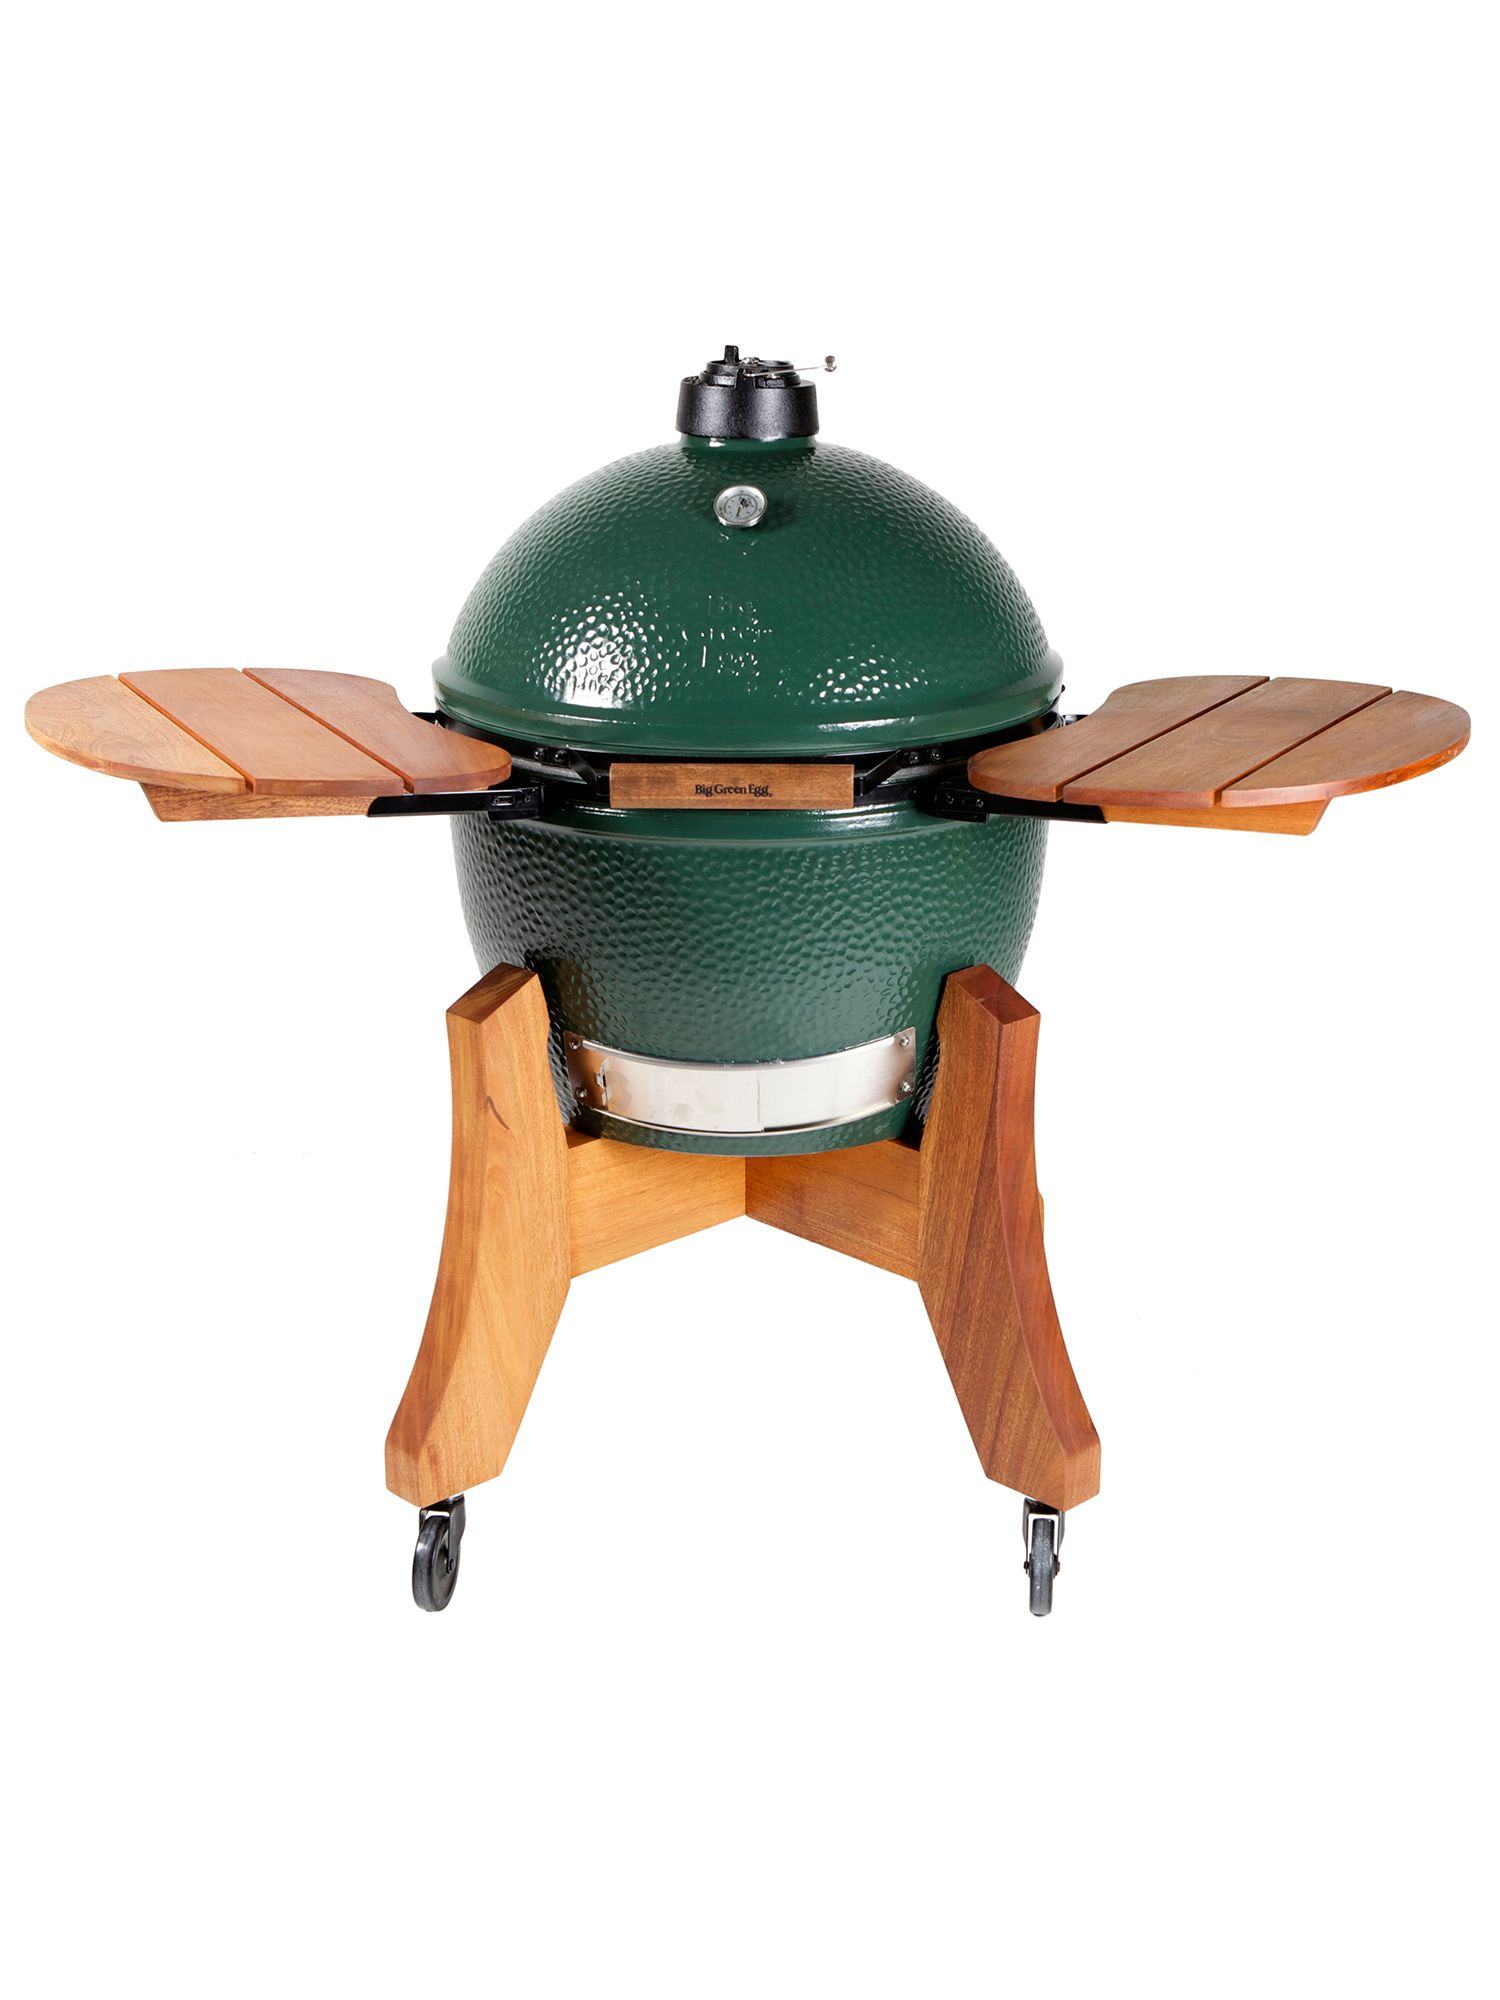 Image of Big Green Egg X large barbecue in mahogany base with shelves